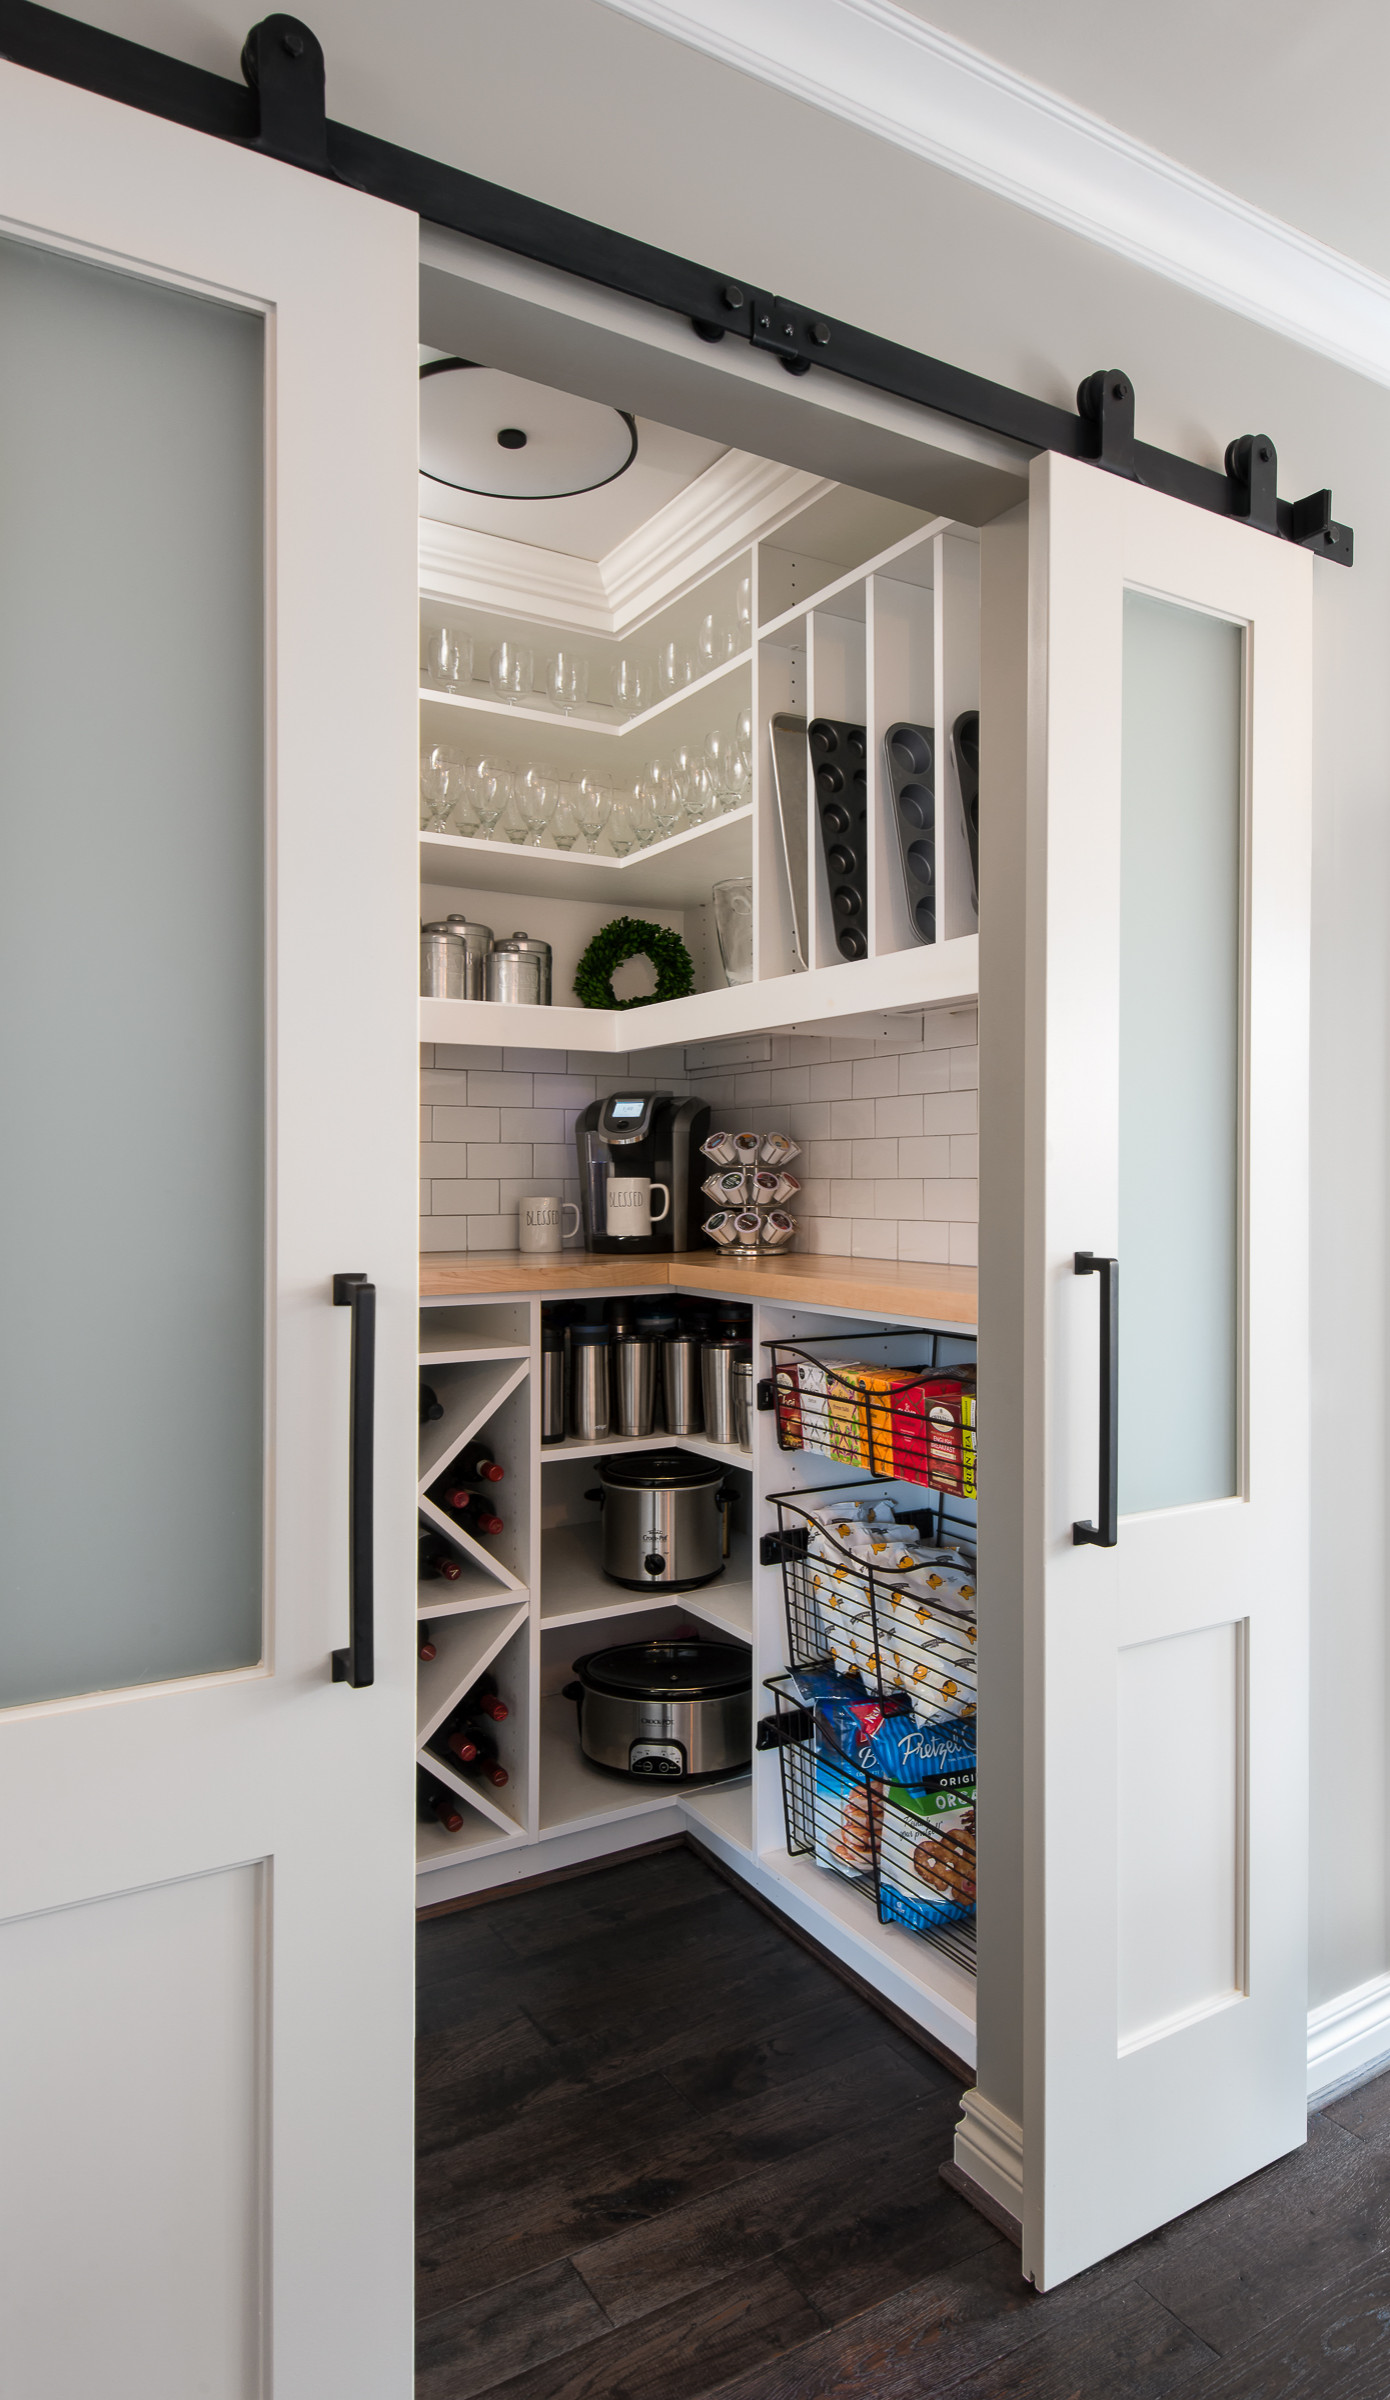 75 Beautiful Small Kitchen Pictures Ideas April 2021 Houzz